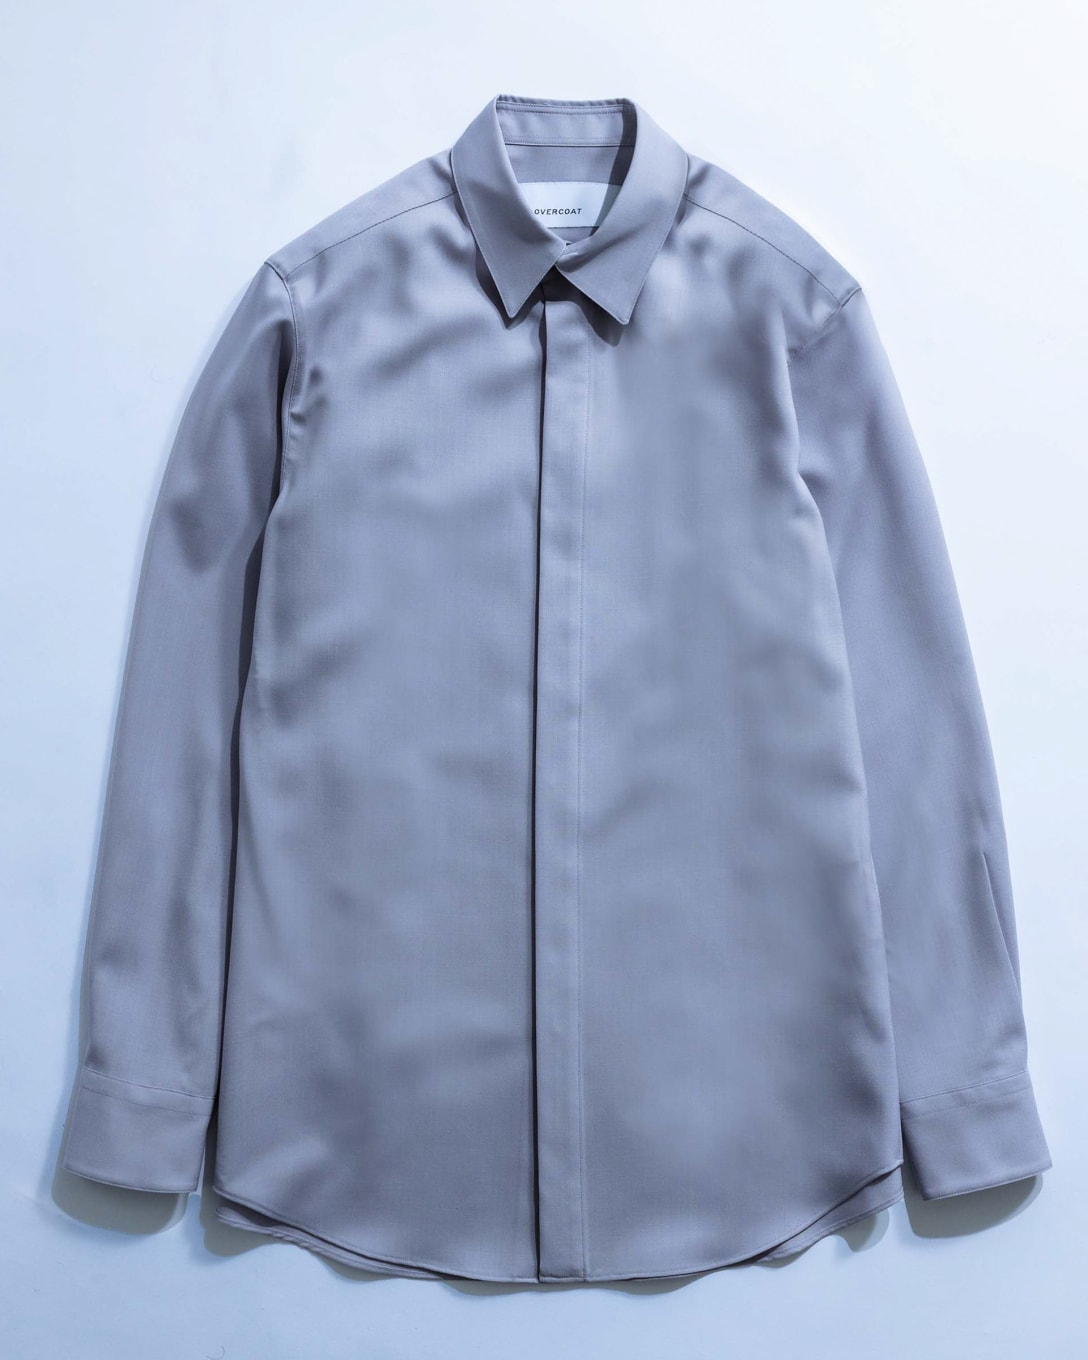 DROPPED SHOULDER TOP WITH SHIRT COLLAR(税込4万4000円) Image by FASHIONSNAP